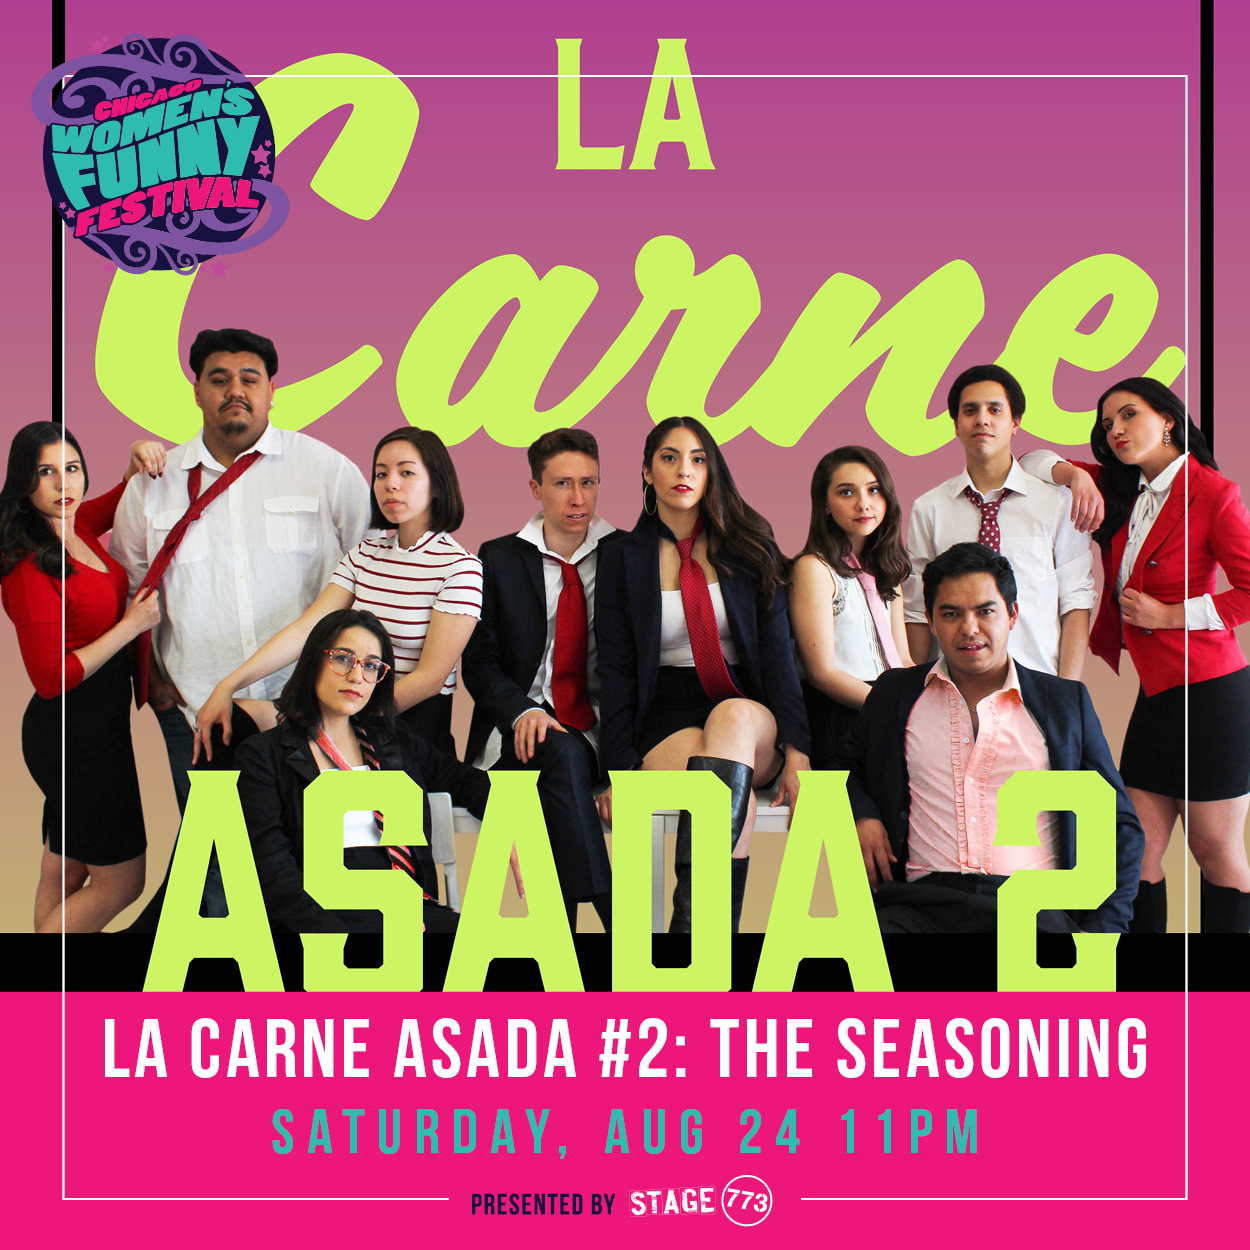 LaCarneAsada2_Saturday_11PM_CWFF20195.jpg